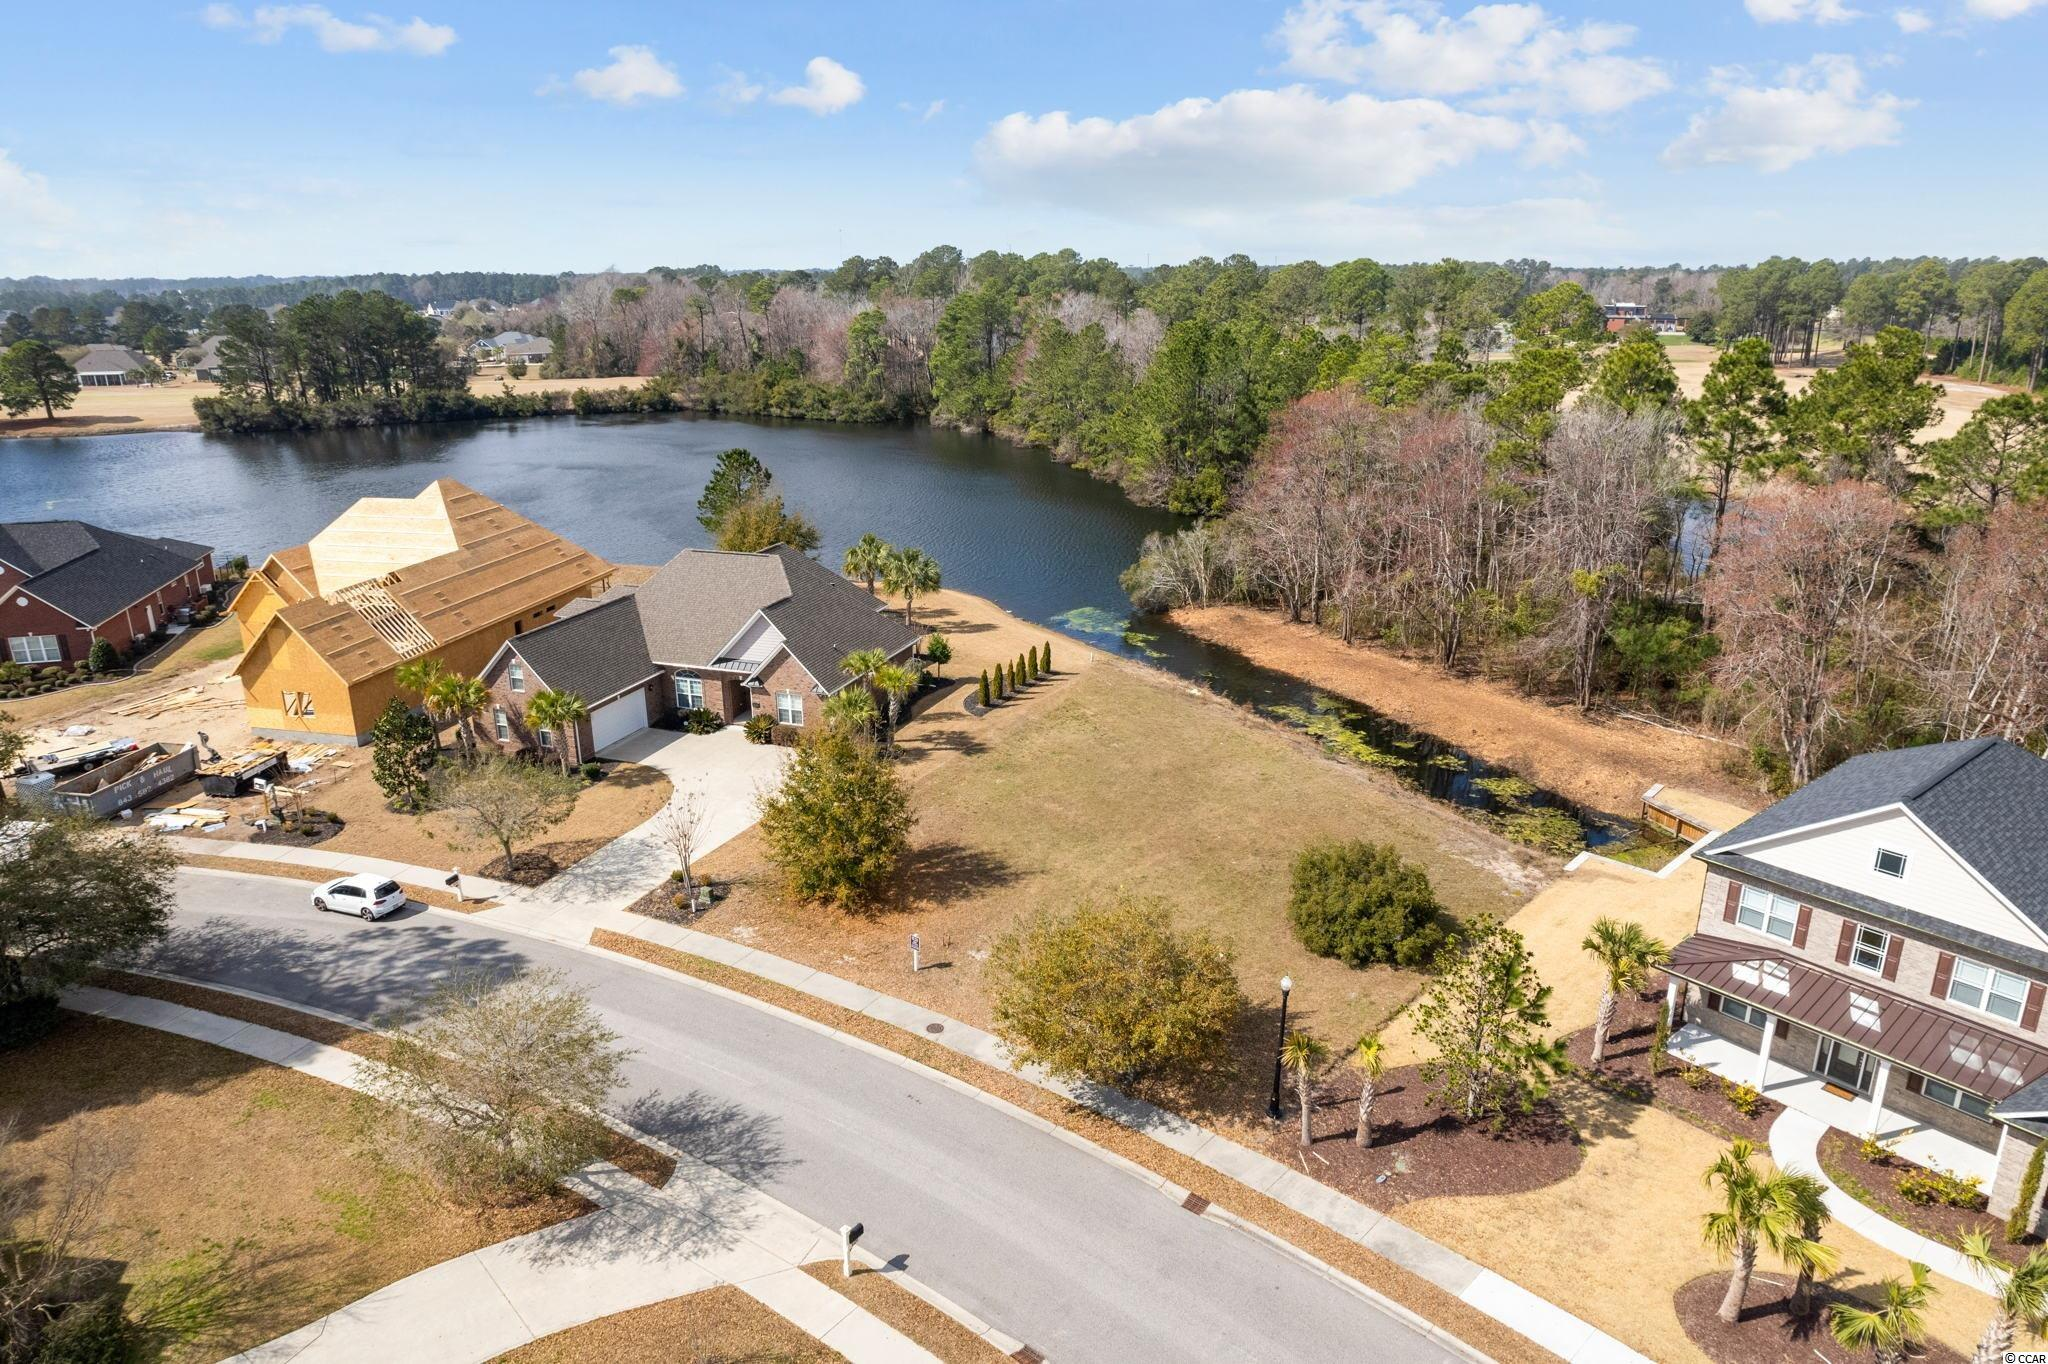 Don't miss this rare opportunity to own a secluded lake front lot or home in the prestigious luxury lake community of Wild Wing Plantation. This fabulous cleared flat lake front lot is located on a private cul-de-sac with secluded privacy, no neighbors behind, 180-degree lake view that offers breathtaking sunsets looking down the lake. This lot is now one of the lowest priced lots on the large 180-acre lake.  Lot #51 is nearly ½ acre and offers you 85' road frontage and 133' lake frontage. You can choose from multiple building plans or have your own custom-built home built on this lake lot. You can use your own builder or use our featured builder with no time frame to build. This home will have the latest state of the art green energy features and be SOLAR ready!!!    Enjoy the many SC lake birds, including blue heron, egrets and even eagles. Wild Wing Plantation has over 180 acres of lakes for you to explore and enjoy. You can even have your own private boat dock, use your boat to explore the lakes, fish and even take your boat to the clubhouse to also enjoy the many amenities there. The community features custom built brick and stucco style luxury homes.   Association amenities included large clubhouse, multiple outdoor pools, hot tub, 80' waterslide, tennis/pickle ball courts, basketball court, playground area, huge day dock, private boat ramp and owners private boat storage. Be sure to have your Realtor ask about the Wild Wing Golf Club membership promotion that the developer is offering!!! Wild Wing Plantation offers convenient easy access to Coastal Carolina University, shopping, the beaches and all that Myrtle Beach and Conway has to offer. House plan is for illustration purposes only. Seller will entertain home/land package. Survey with setbacks available upon request. Do NOT miss this opportunity on one of the lowest priced lake front lots available. And it's cleared and ready to build.